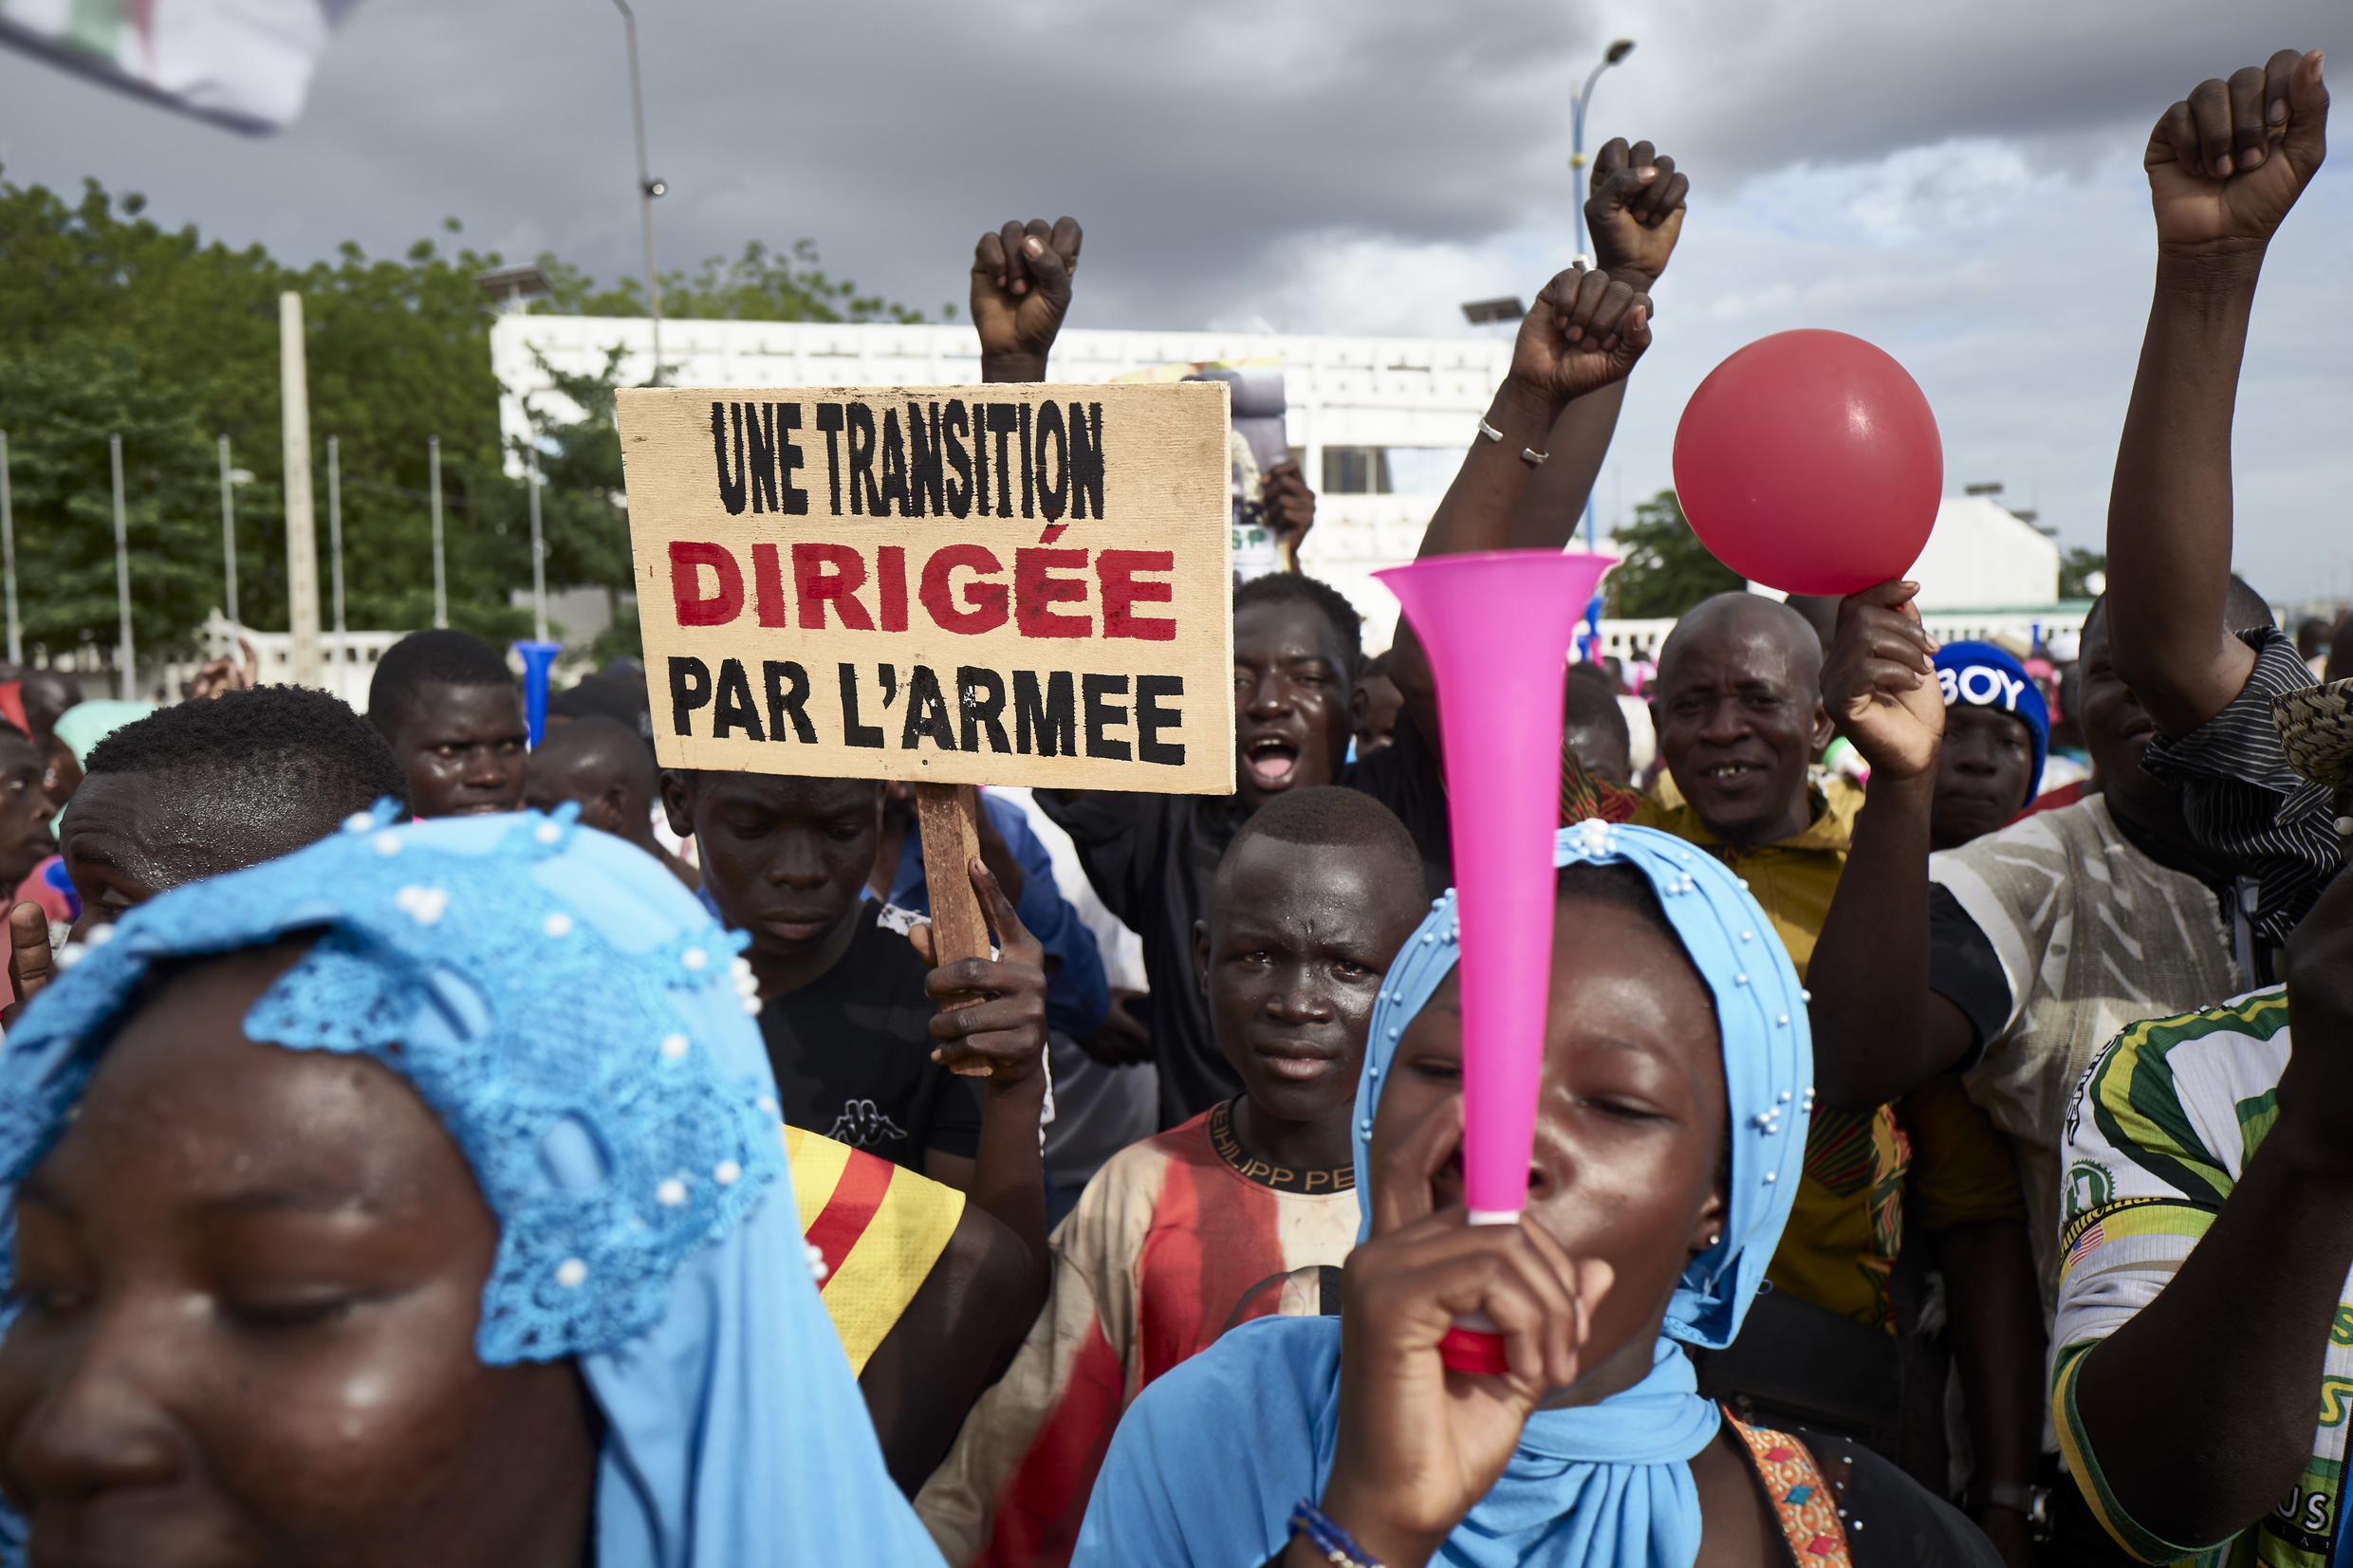 """Some Malians welcomed the military coup. A man holds a sign reading """"A transition led by the army"""" at a rally by supporters of the CNSP on 8 September 2020 in Bamako."""